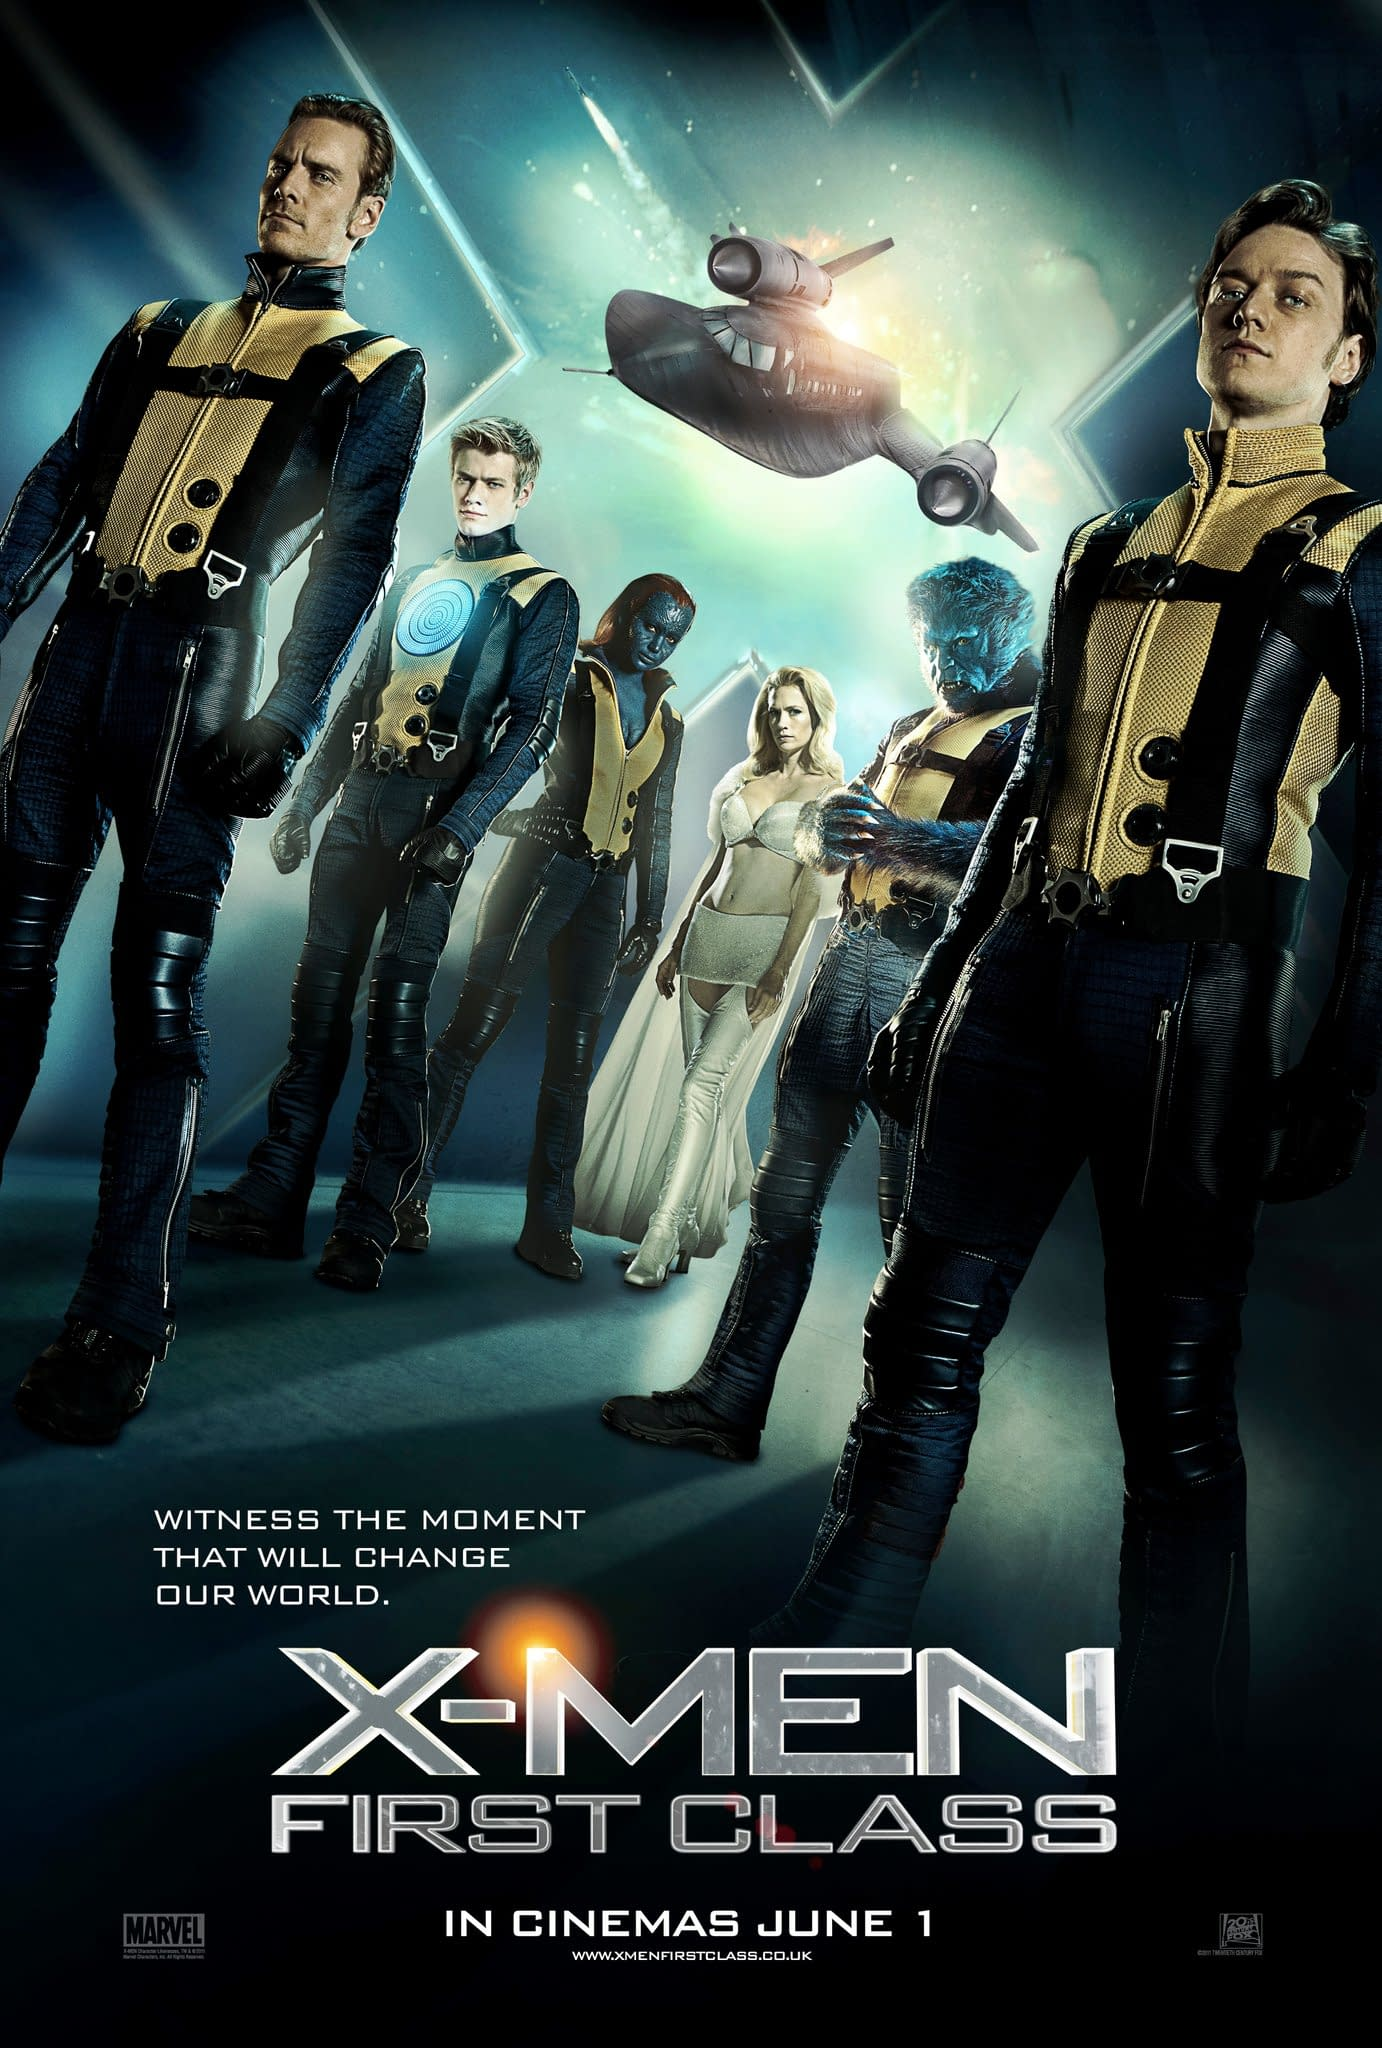 Another Odd Looking X-Men First Class Movie Poster